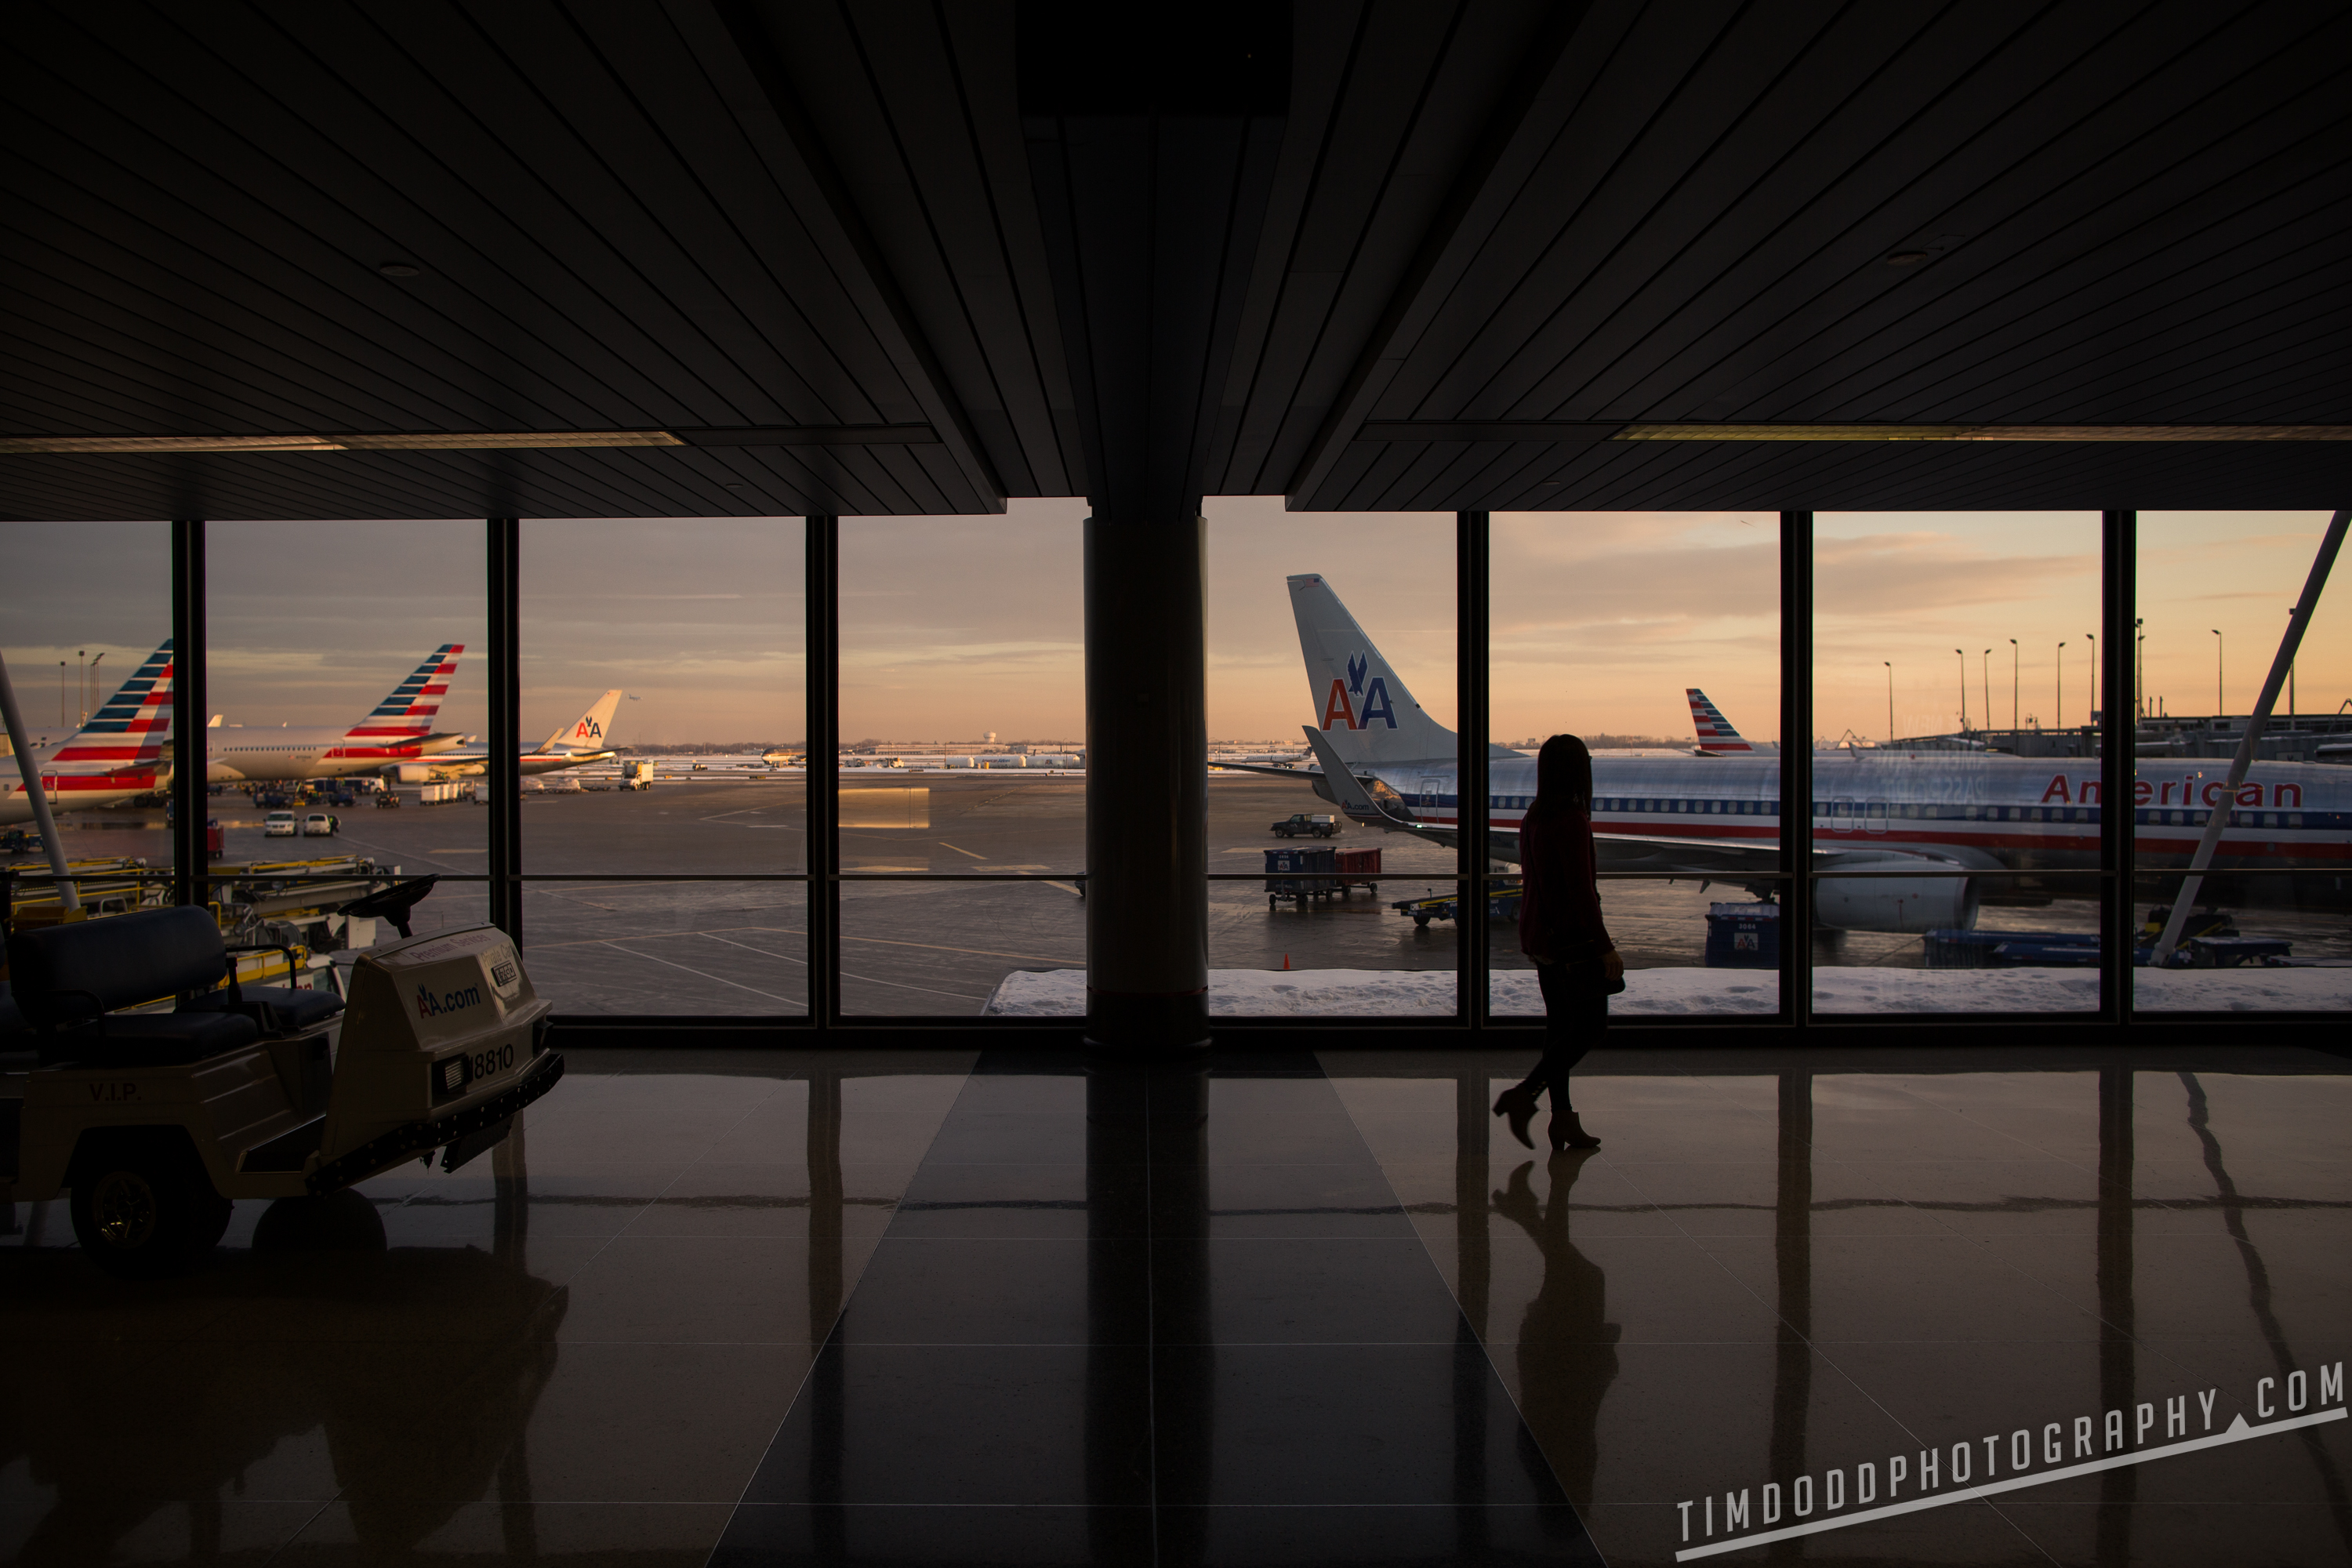 Chicago O'hare Ohare American Airlines Terminal girl silhouette sunset dusk beautiful Tim Dodd Photography professional